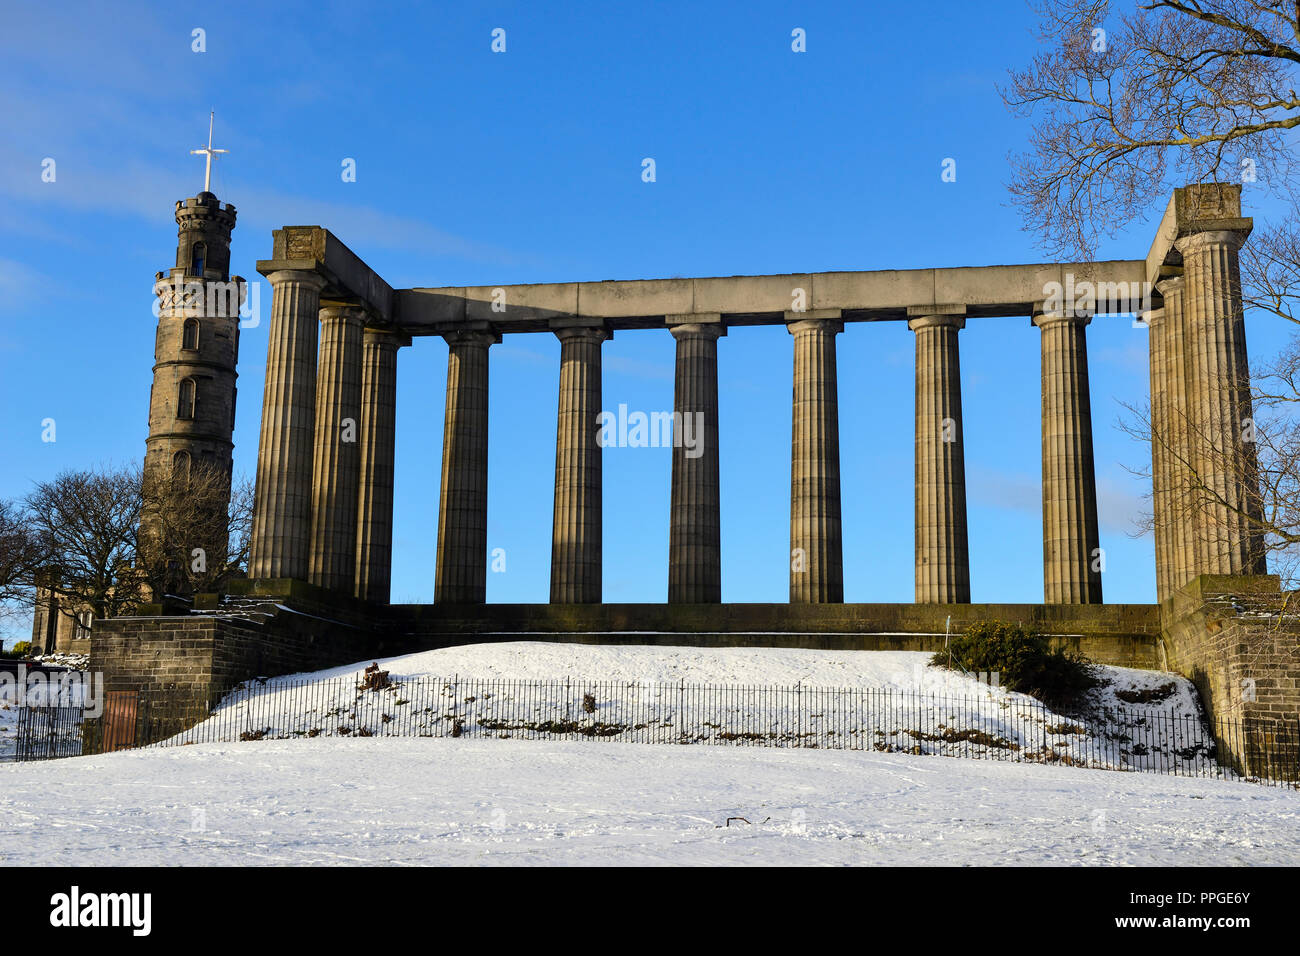 National Monument of Scotland and Nelson's Monument on Calton Hill in the snow, Edinburgh, Scotland Stock Photo